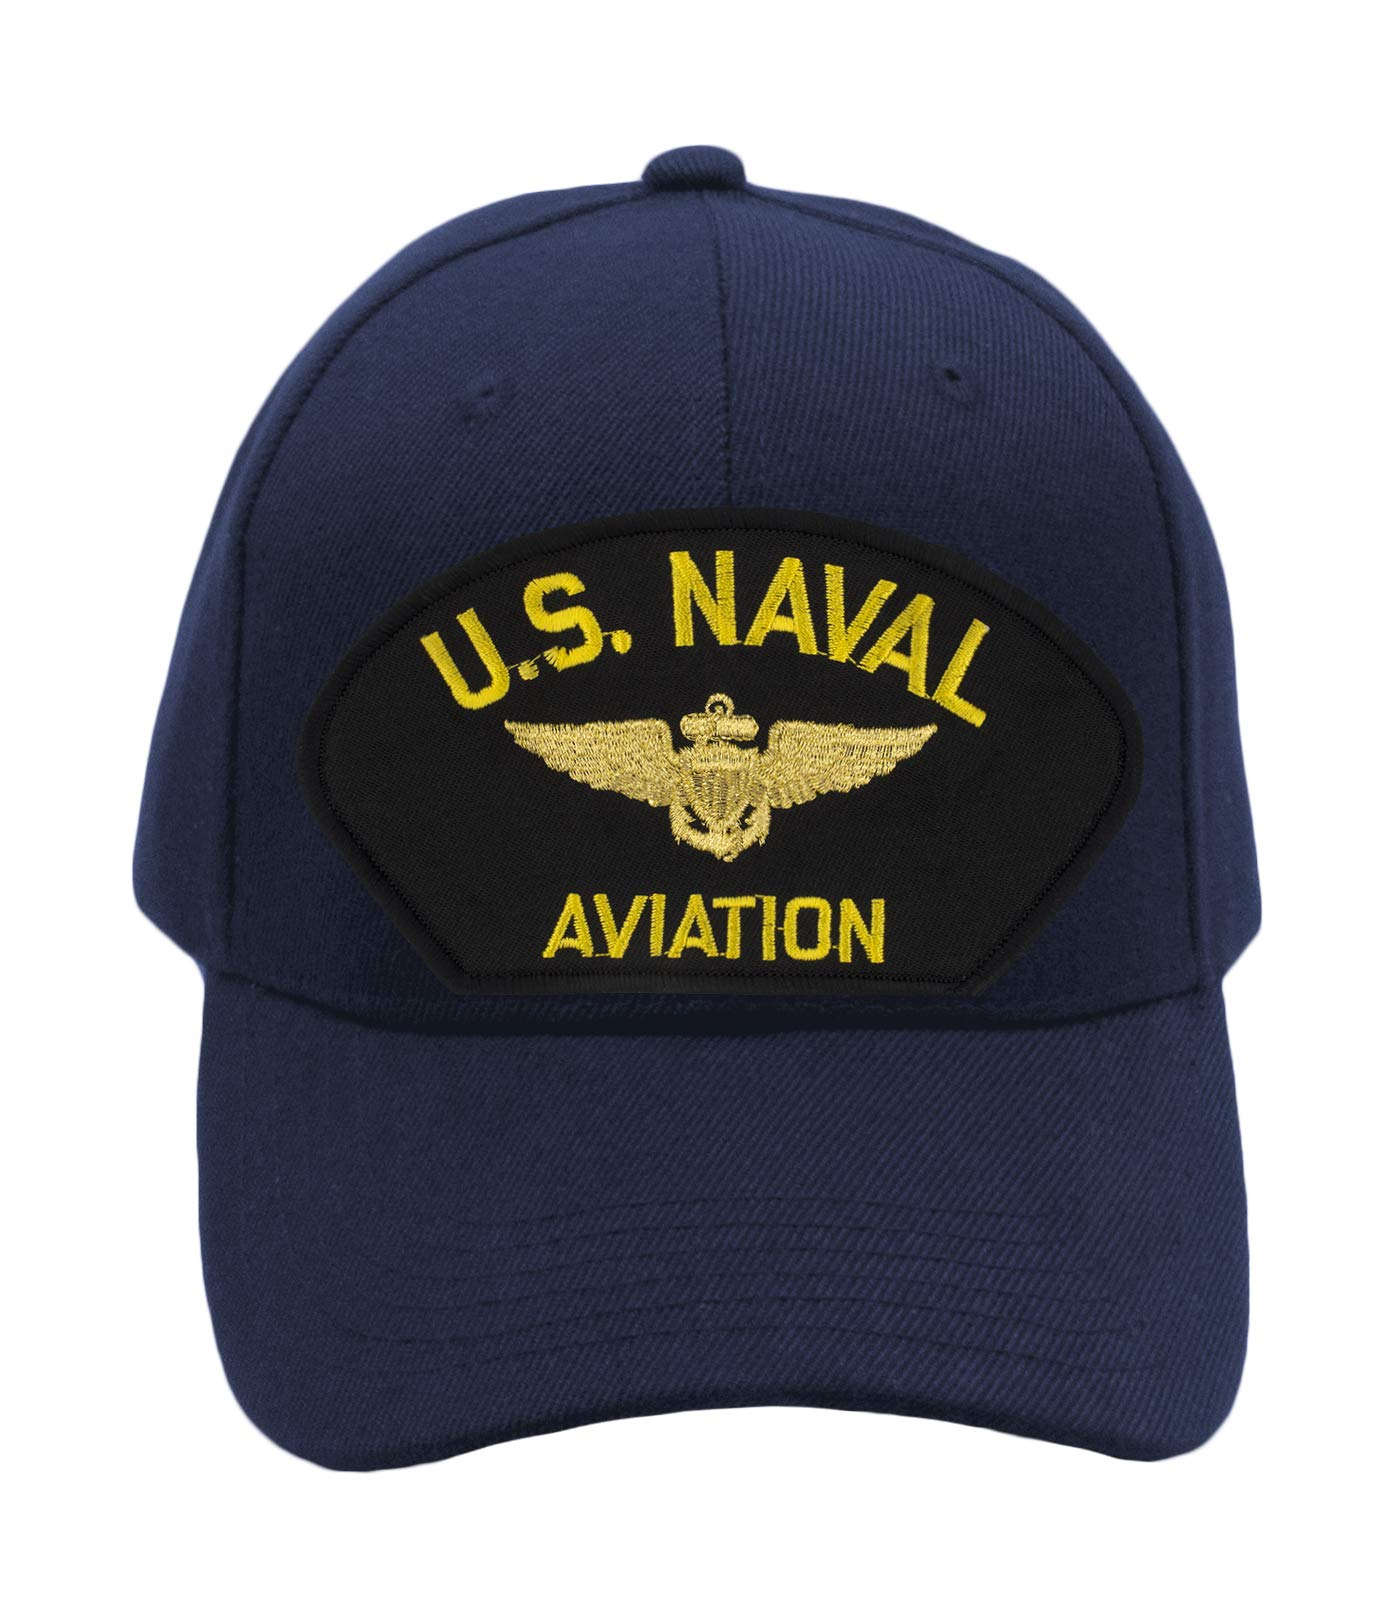 Patchtown US Naval Aviation Hat/Ballcap Adjustable One Size Fits Most (Multiple Colors & Styles) (Navy Blue, Standard (No Flag))